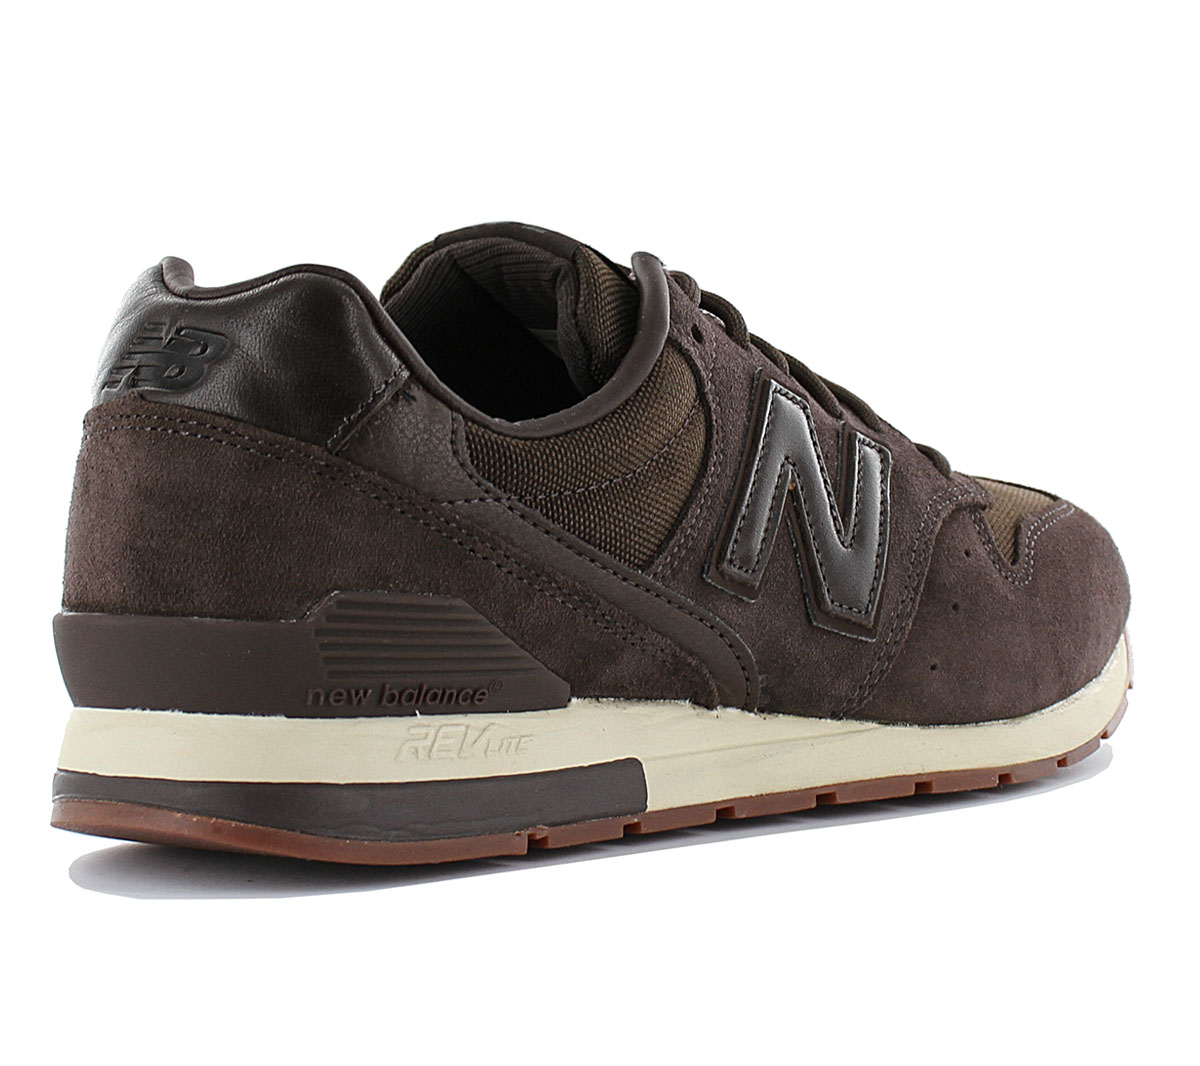 official photos 6612a b0796 Details about New Balance Lifestyle 996 Revlite Men's Sneaker Shoe Sneaker  MRL996SG MRL996